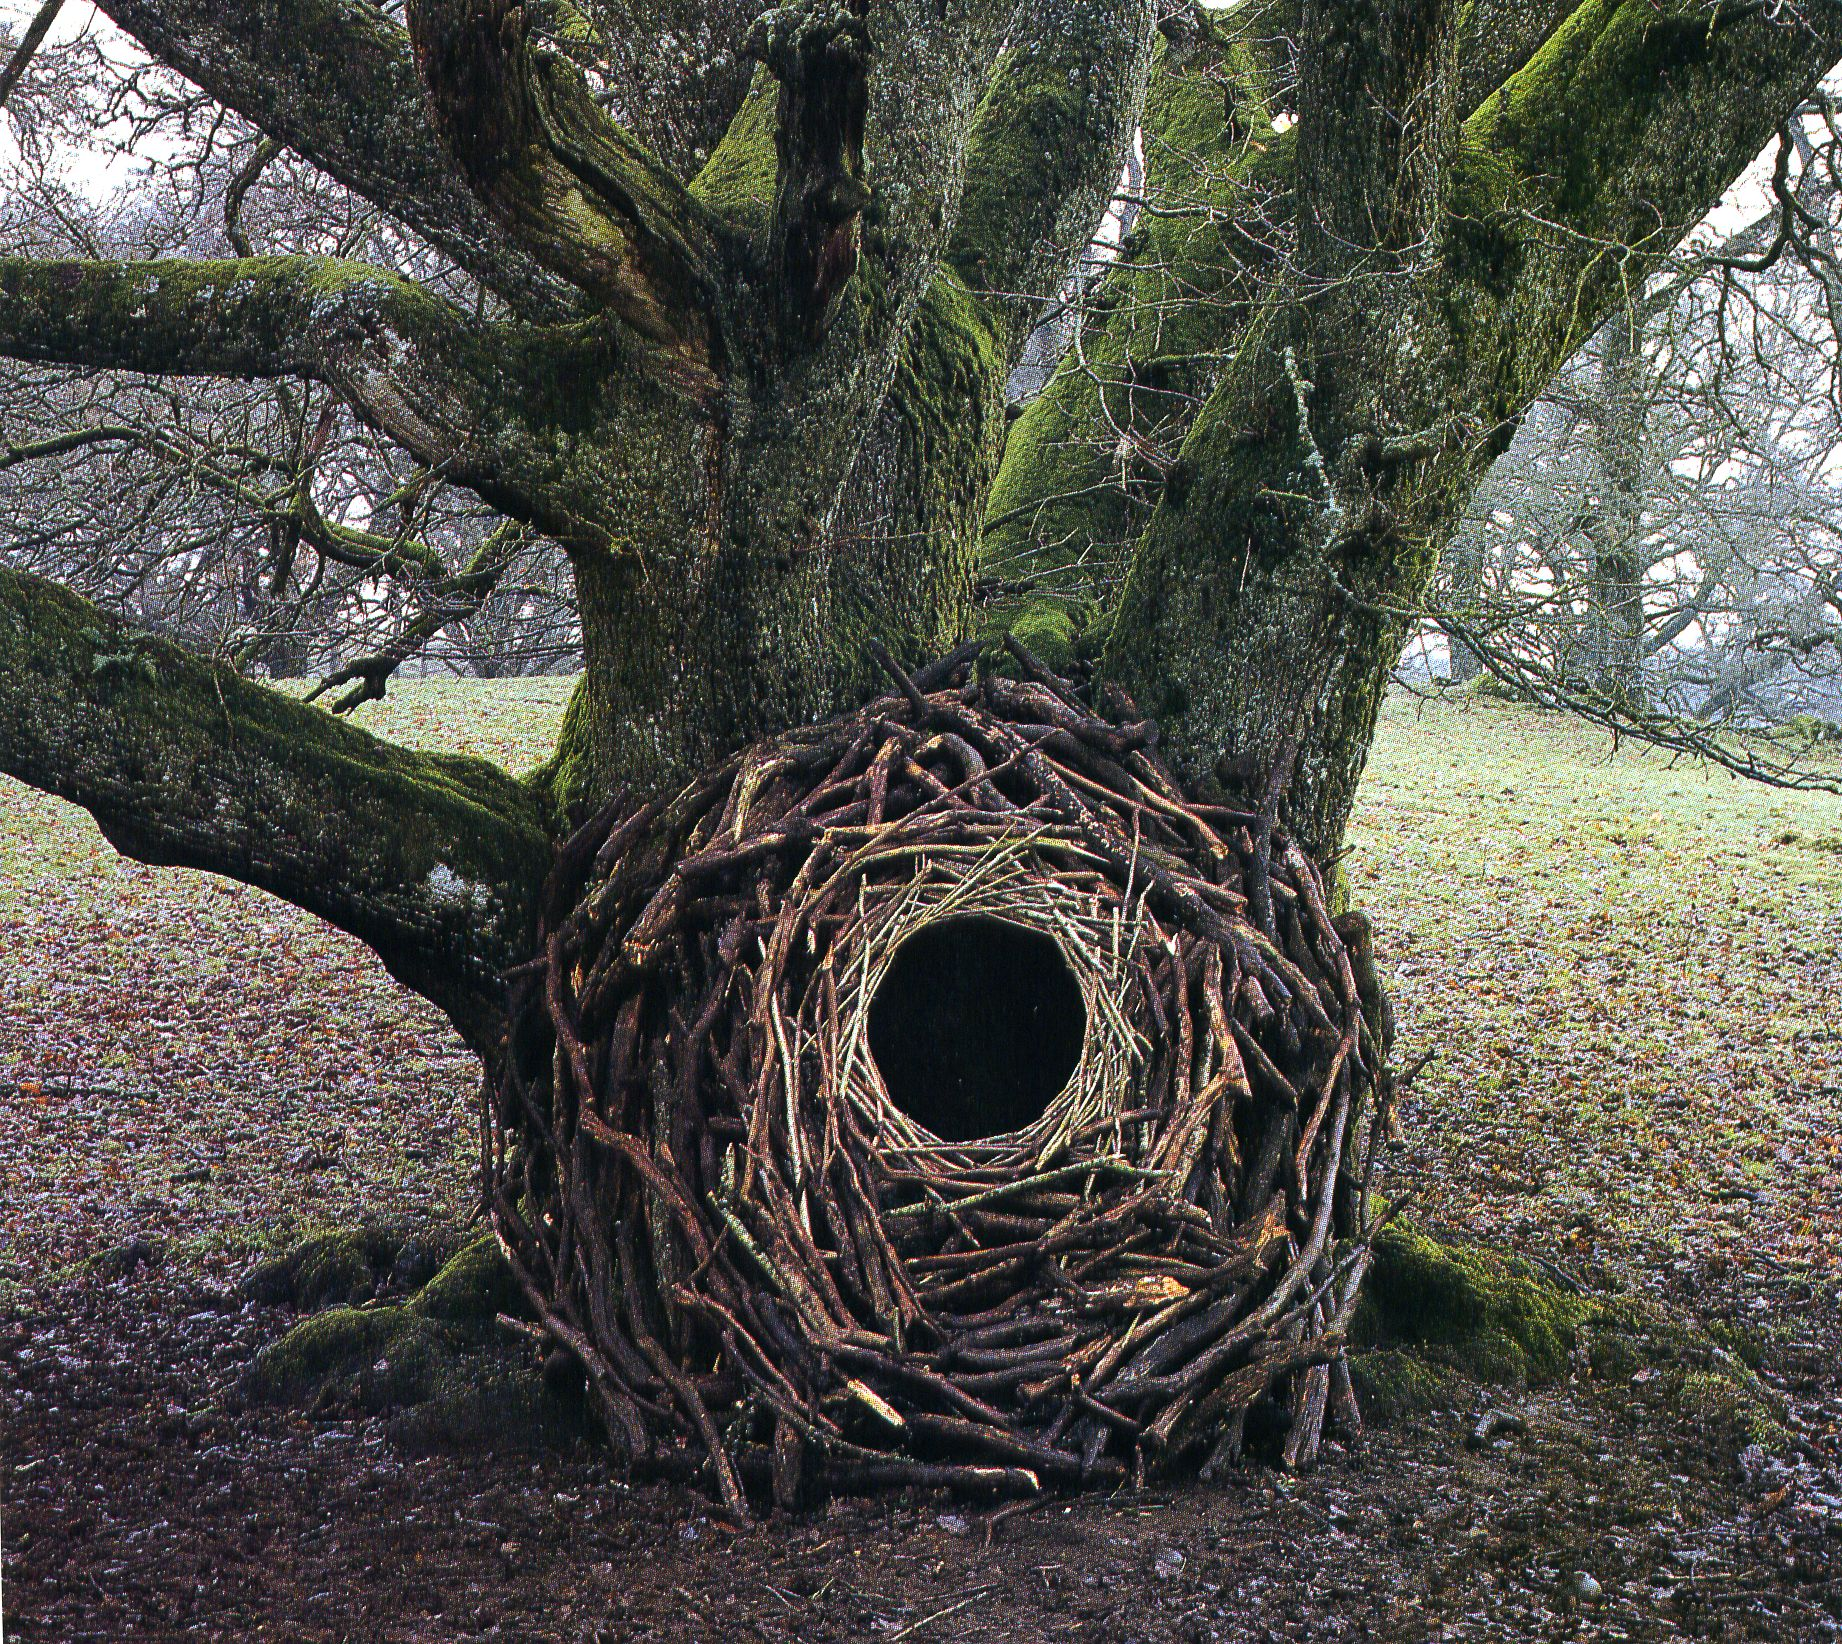 land art Andy Goldsworthy 10 Les oeuvres dans la nature dAndy Goldsworthy  photo bonus art